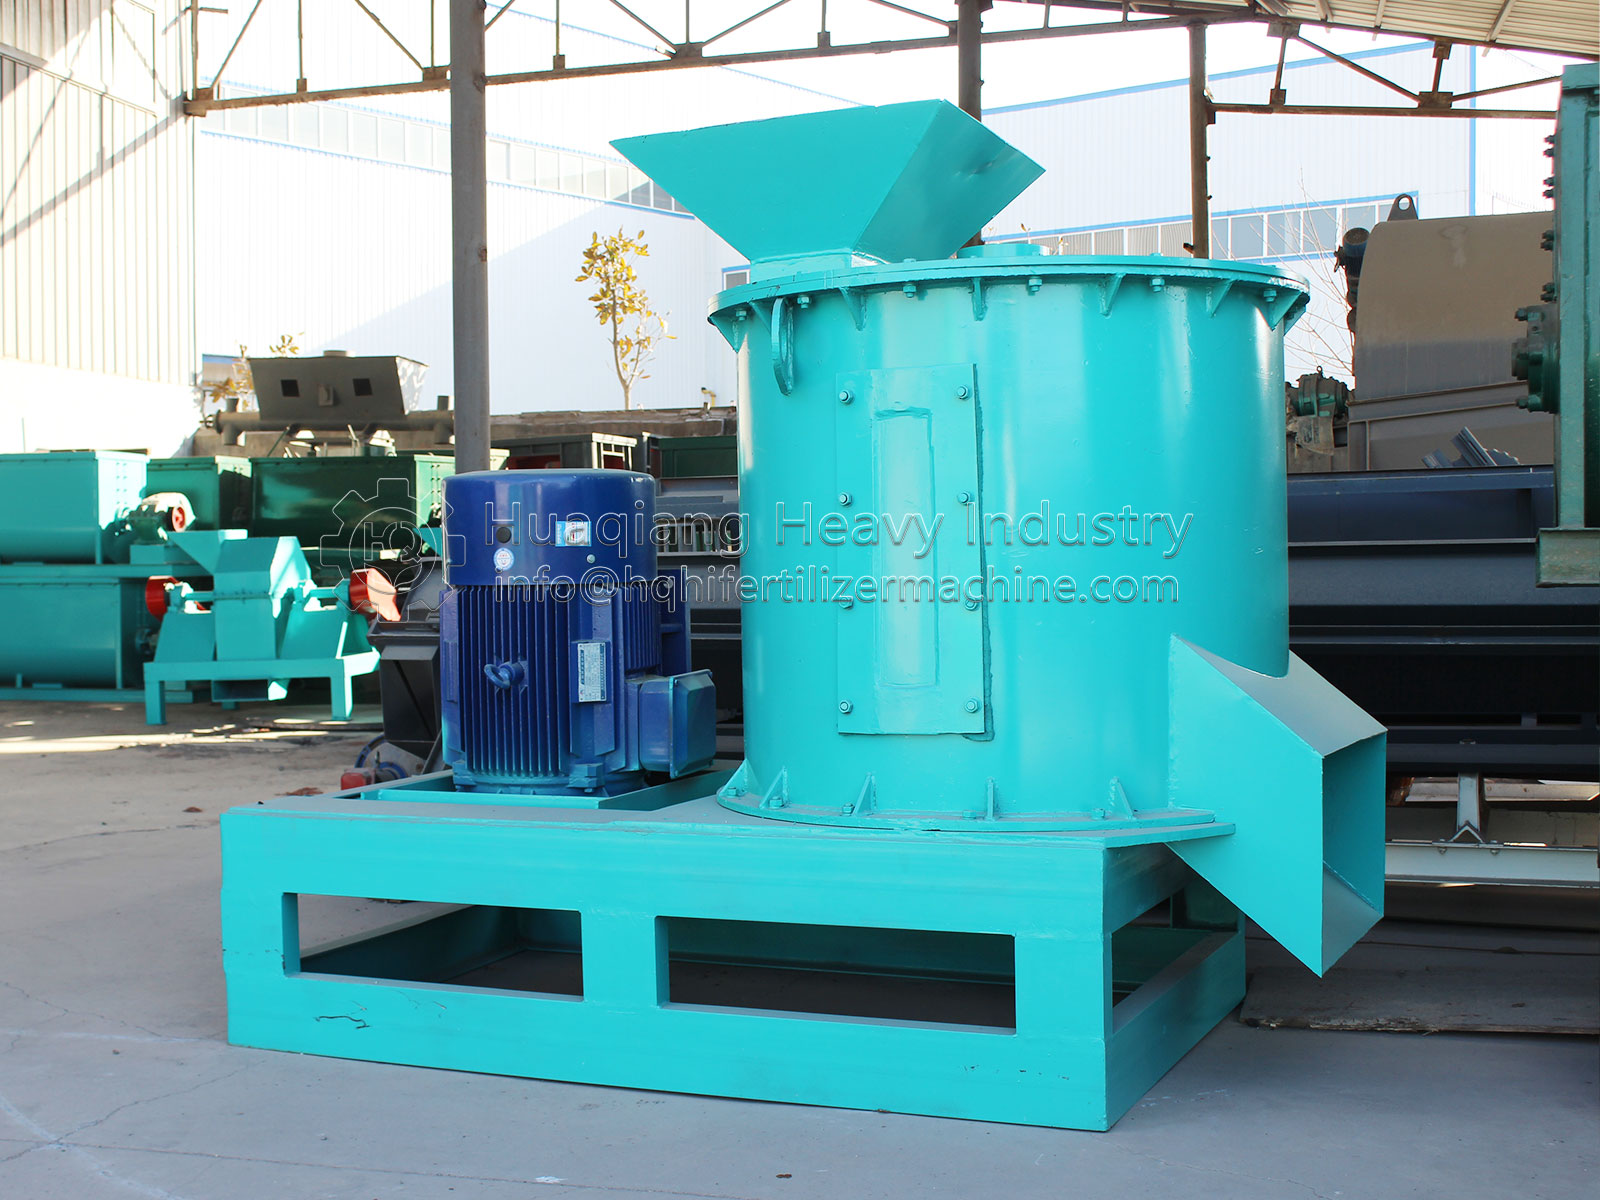 The price of half-wet material crusher for chicken manure